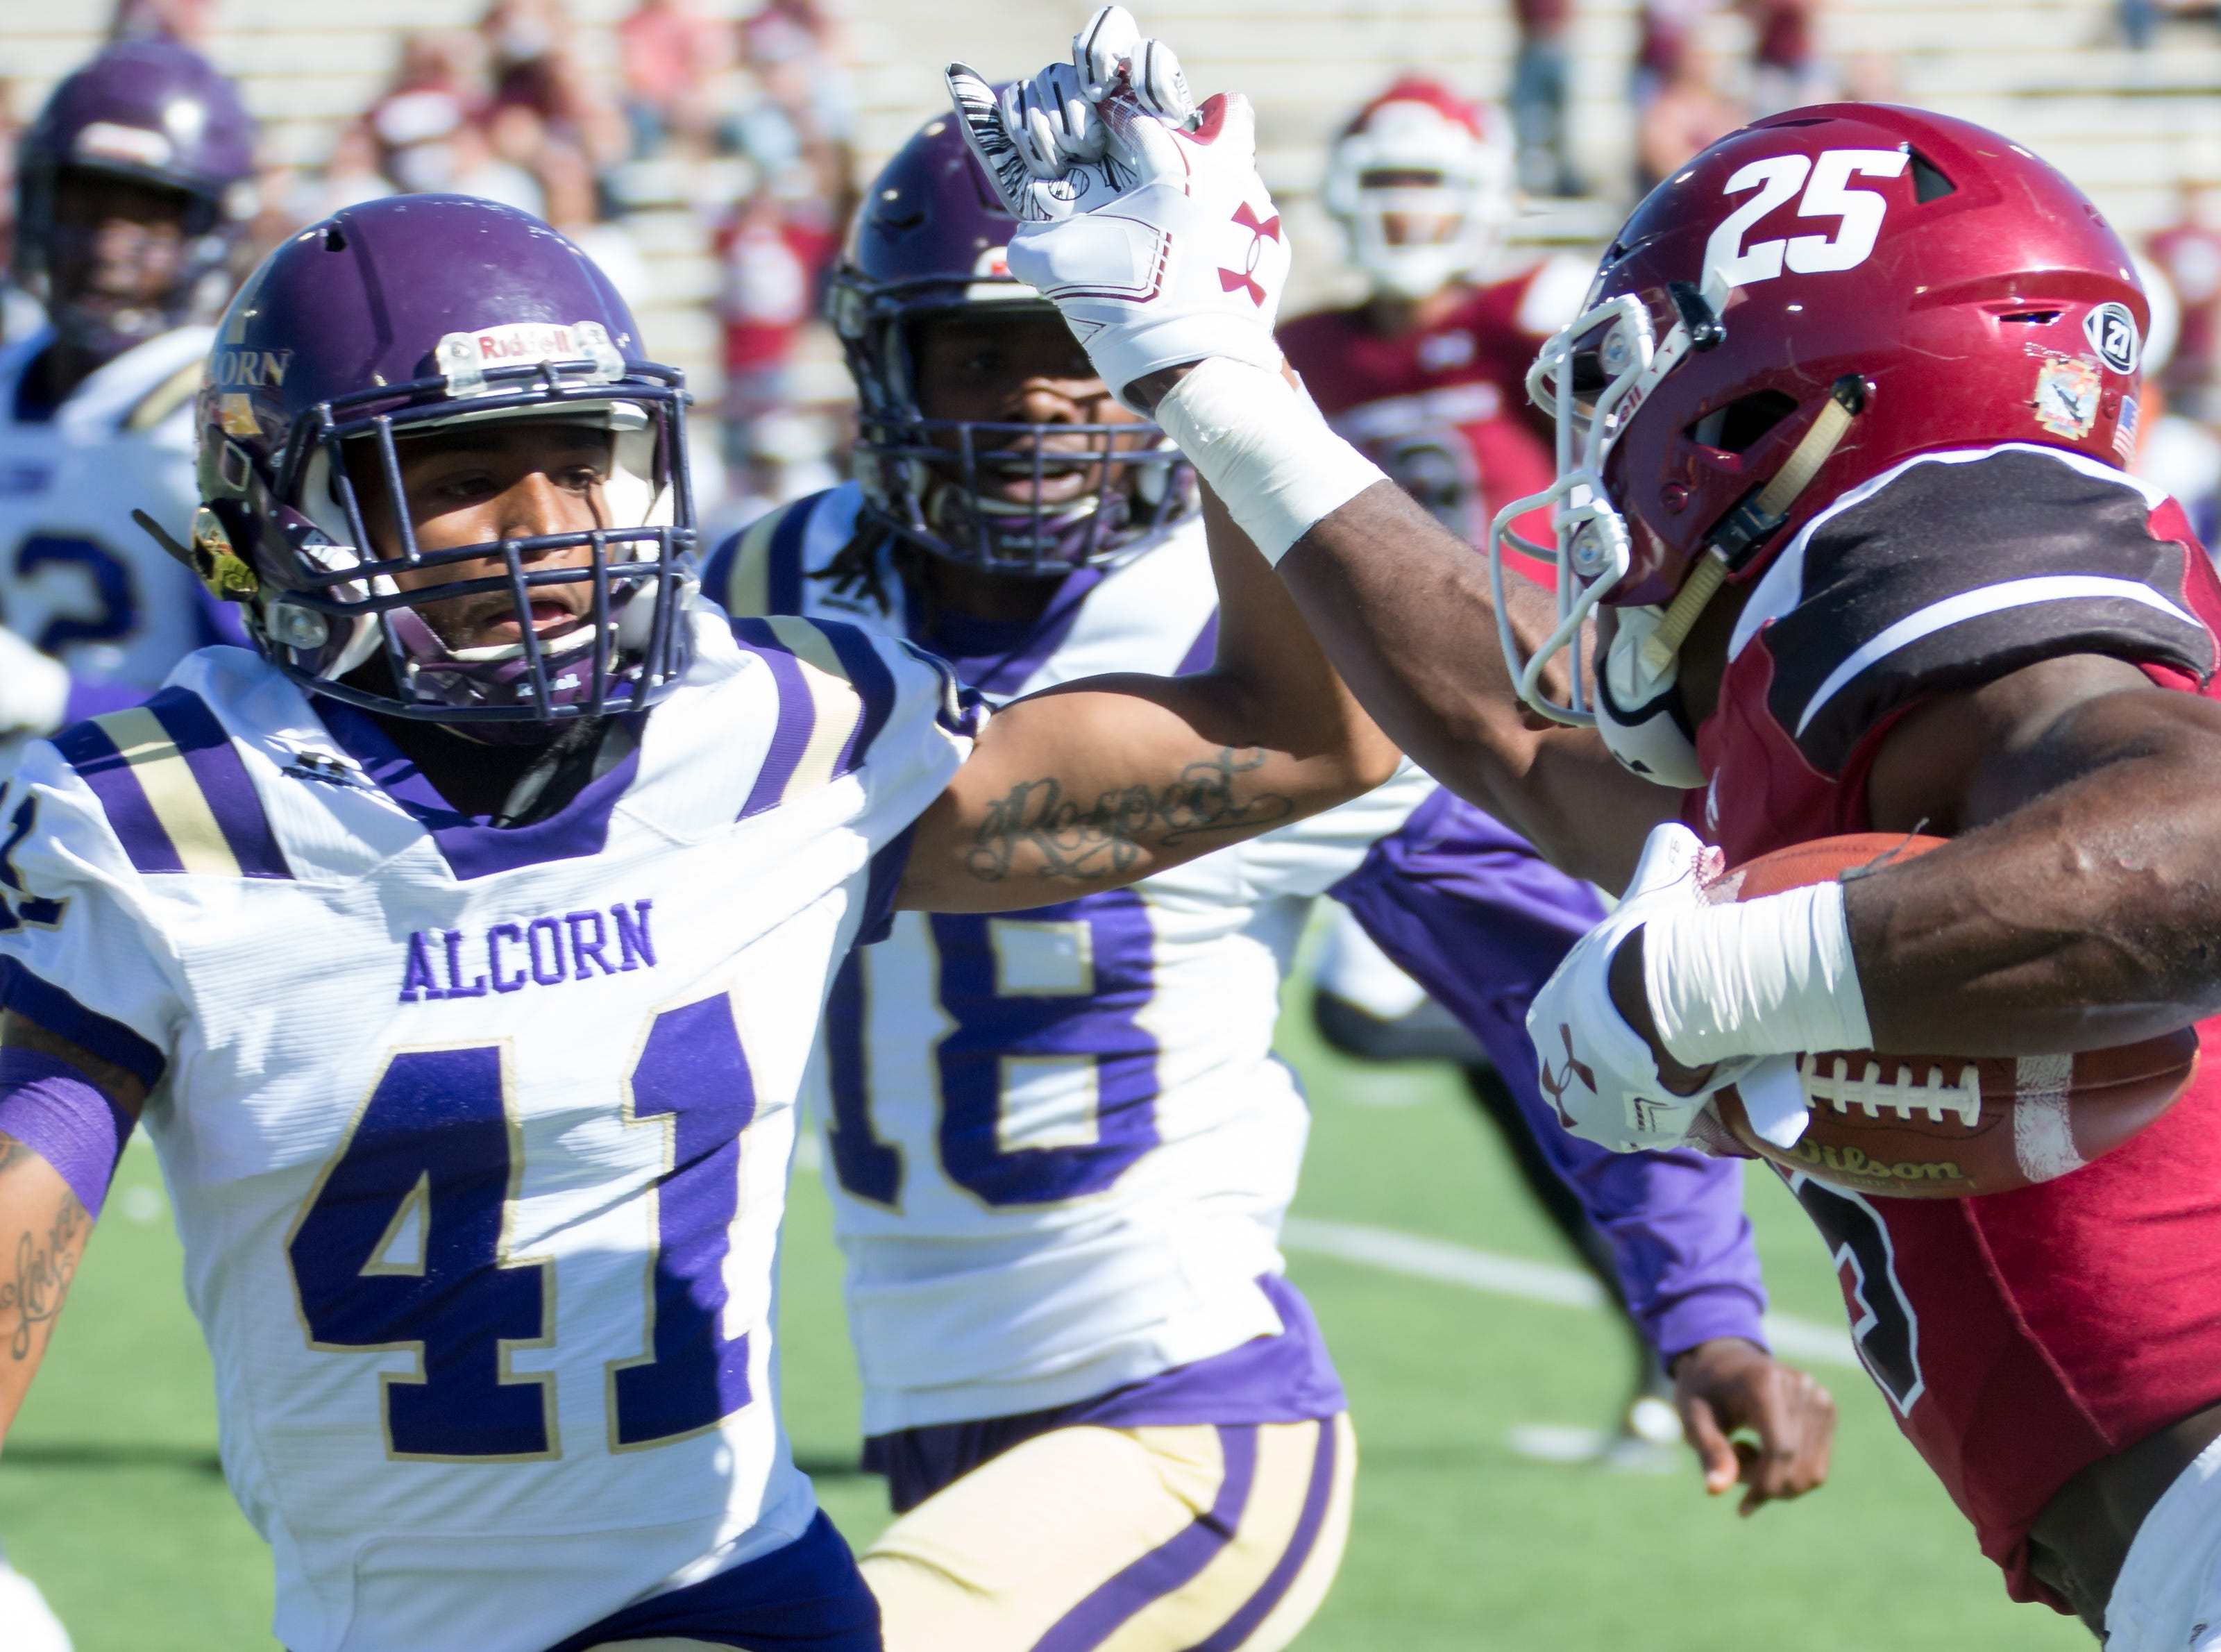 NMSU's Christian Gibson trys to keep Alcorn State player Jalen Thomas away on Saturday, Nov. 3, 2018 at Aggie Memorial Stadium.